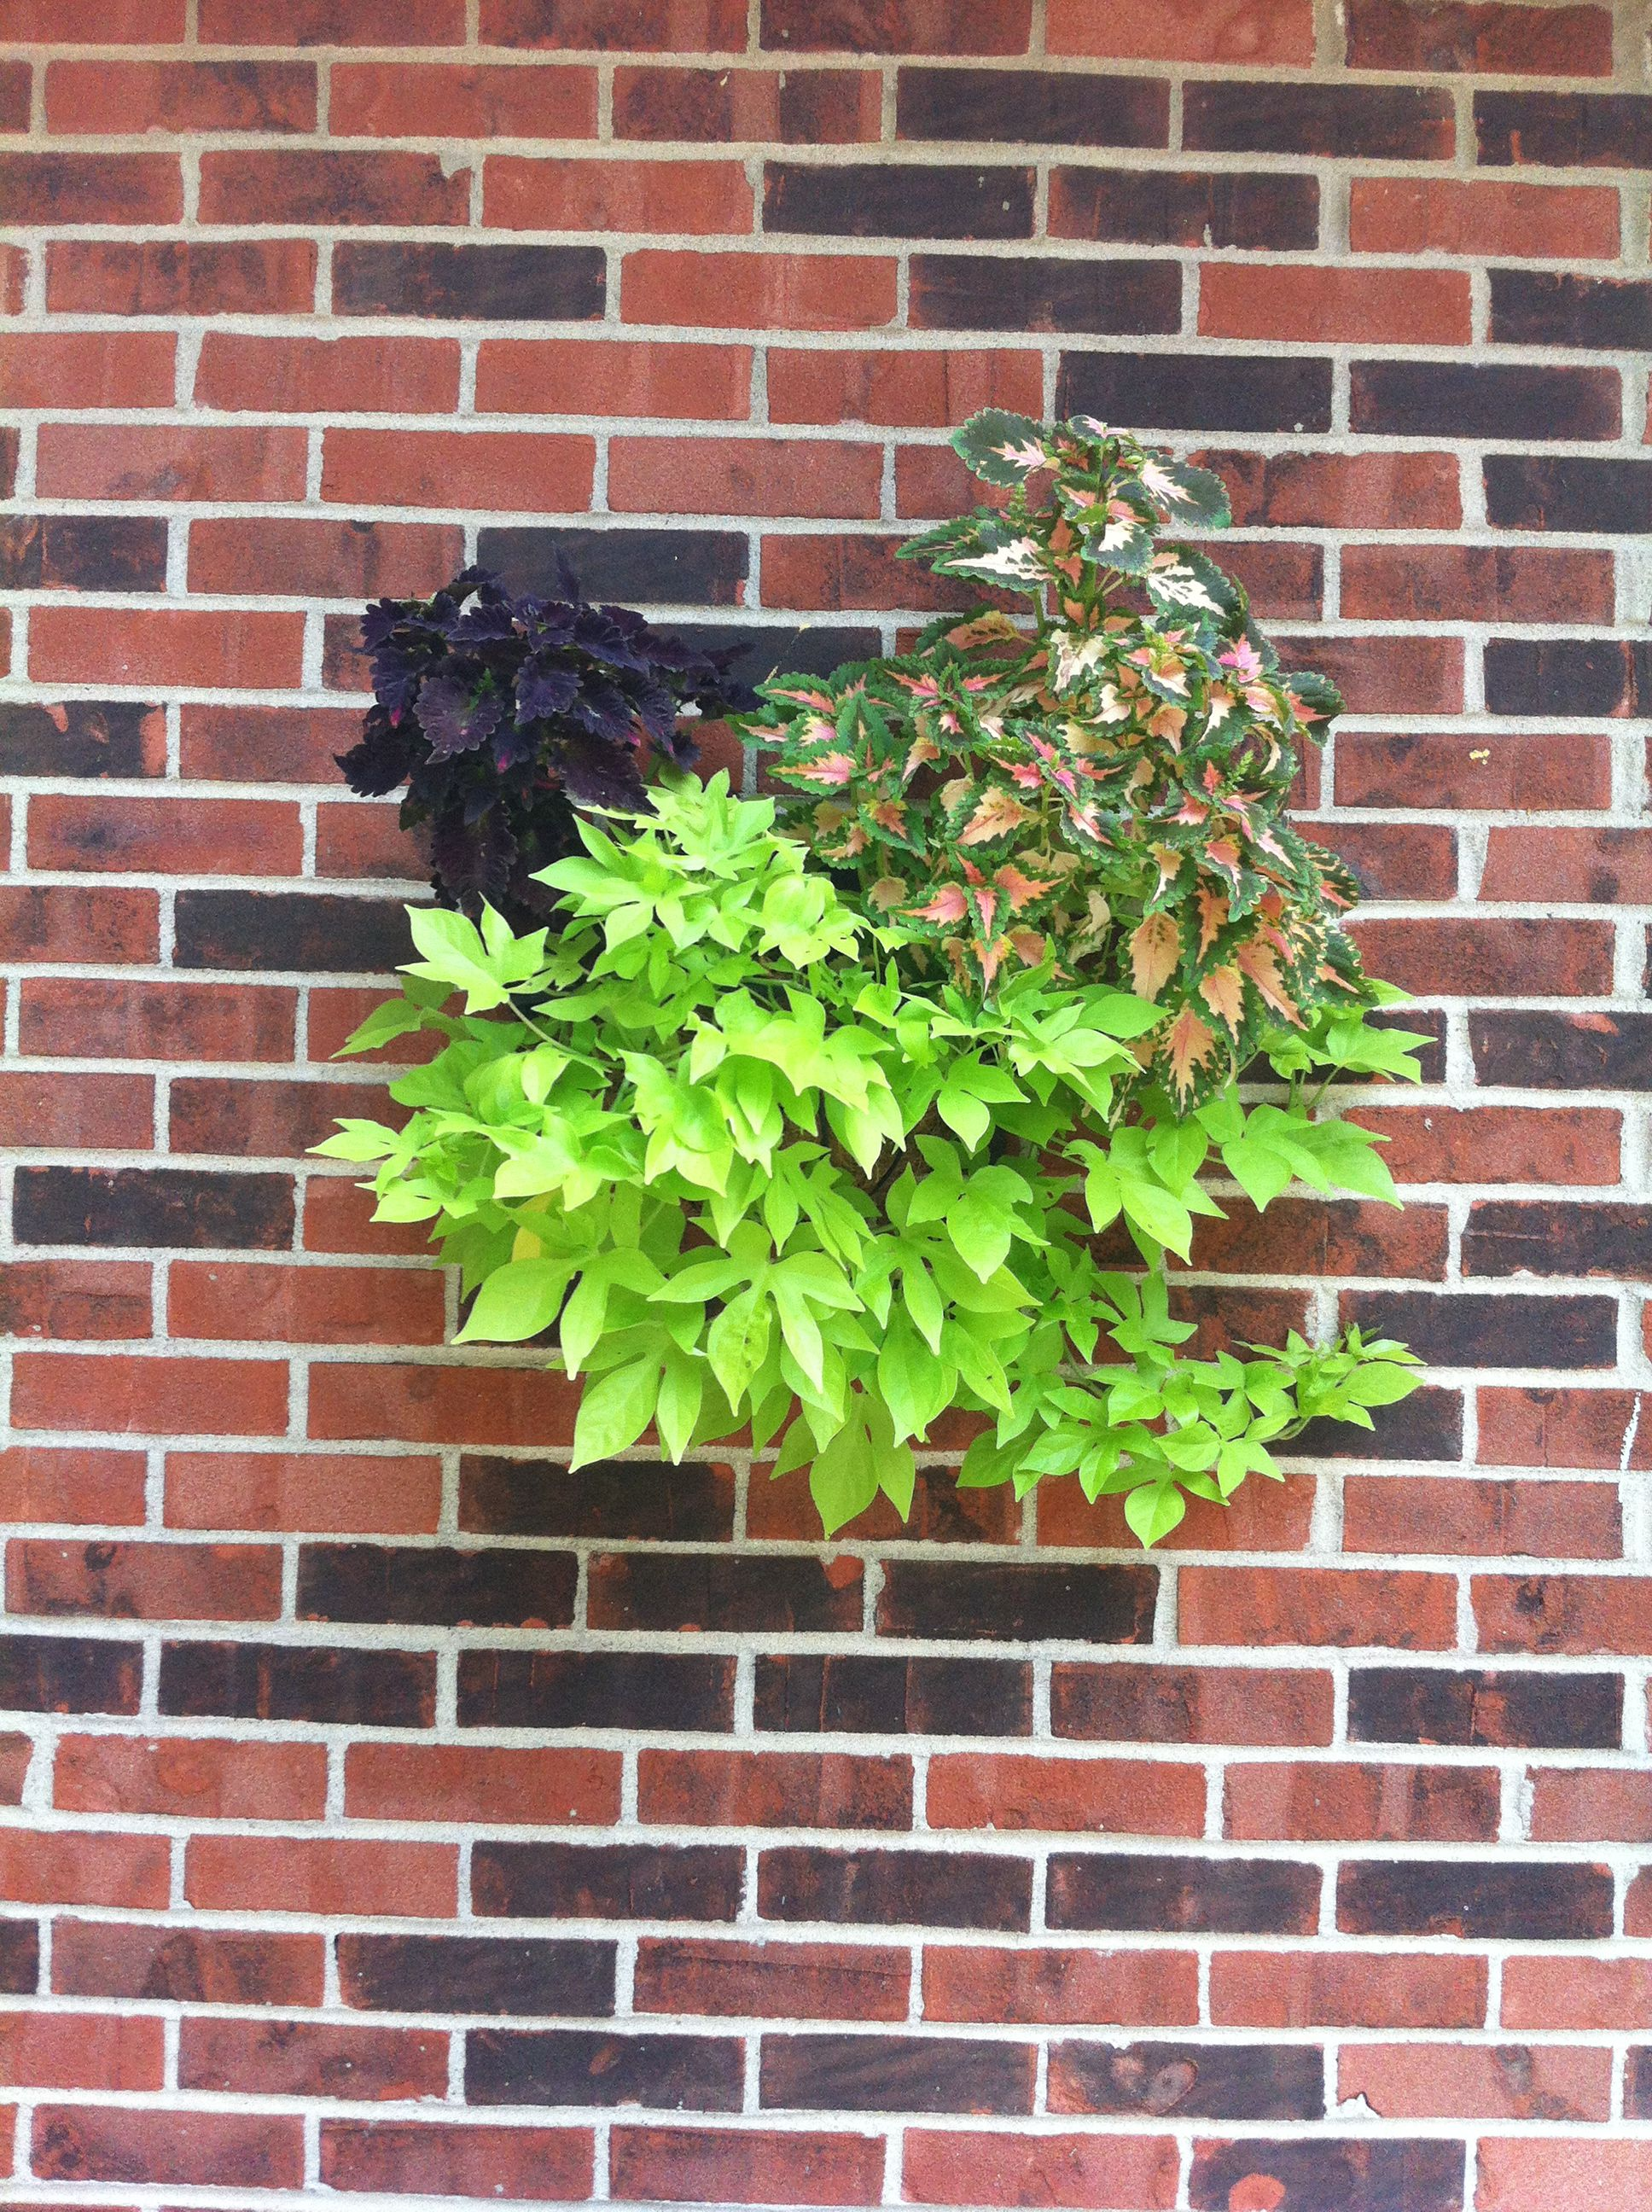 One of my half round baskets hanging on my house. Coleus and Sweet Potato Vine